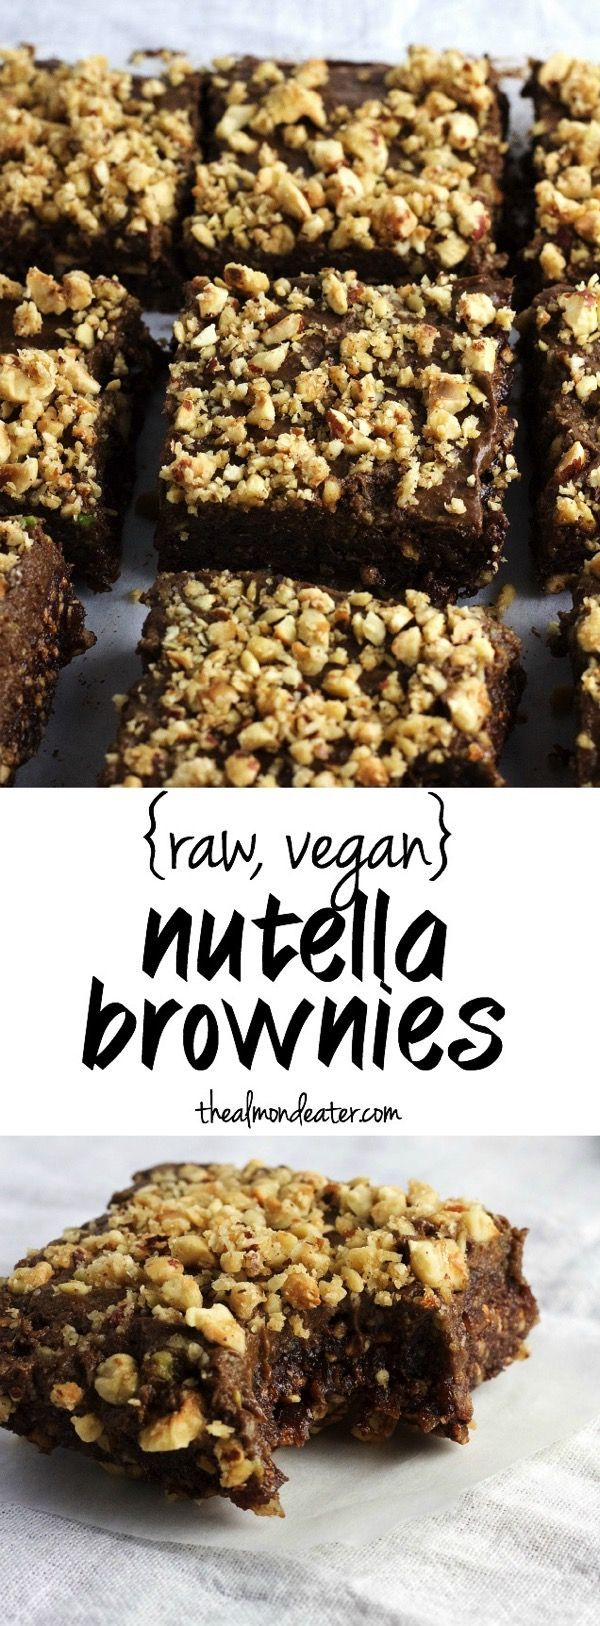 These brownies are rich in taste, guilt-free and the icing is made from a secret healthy ingredient! #vegan